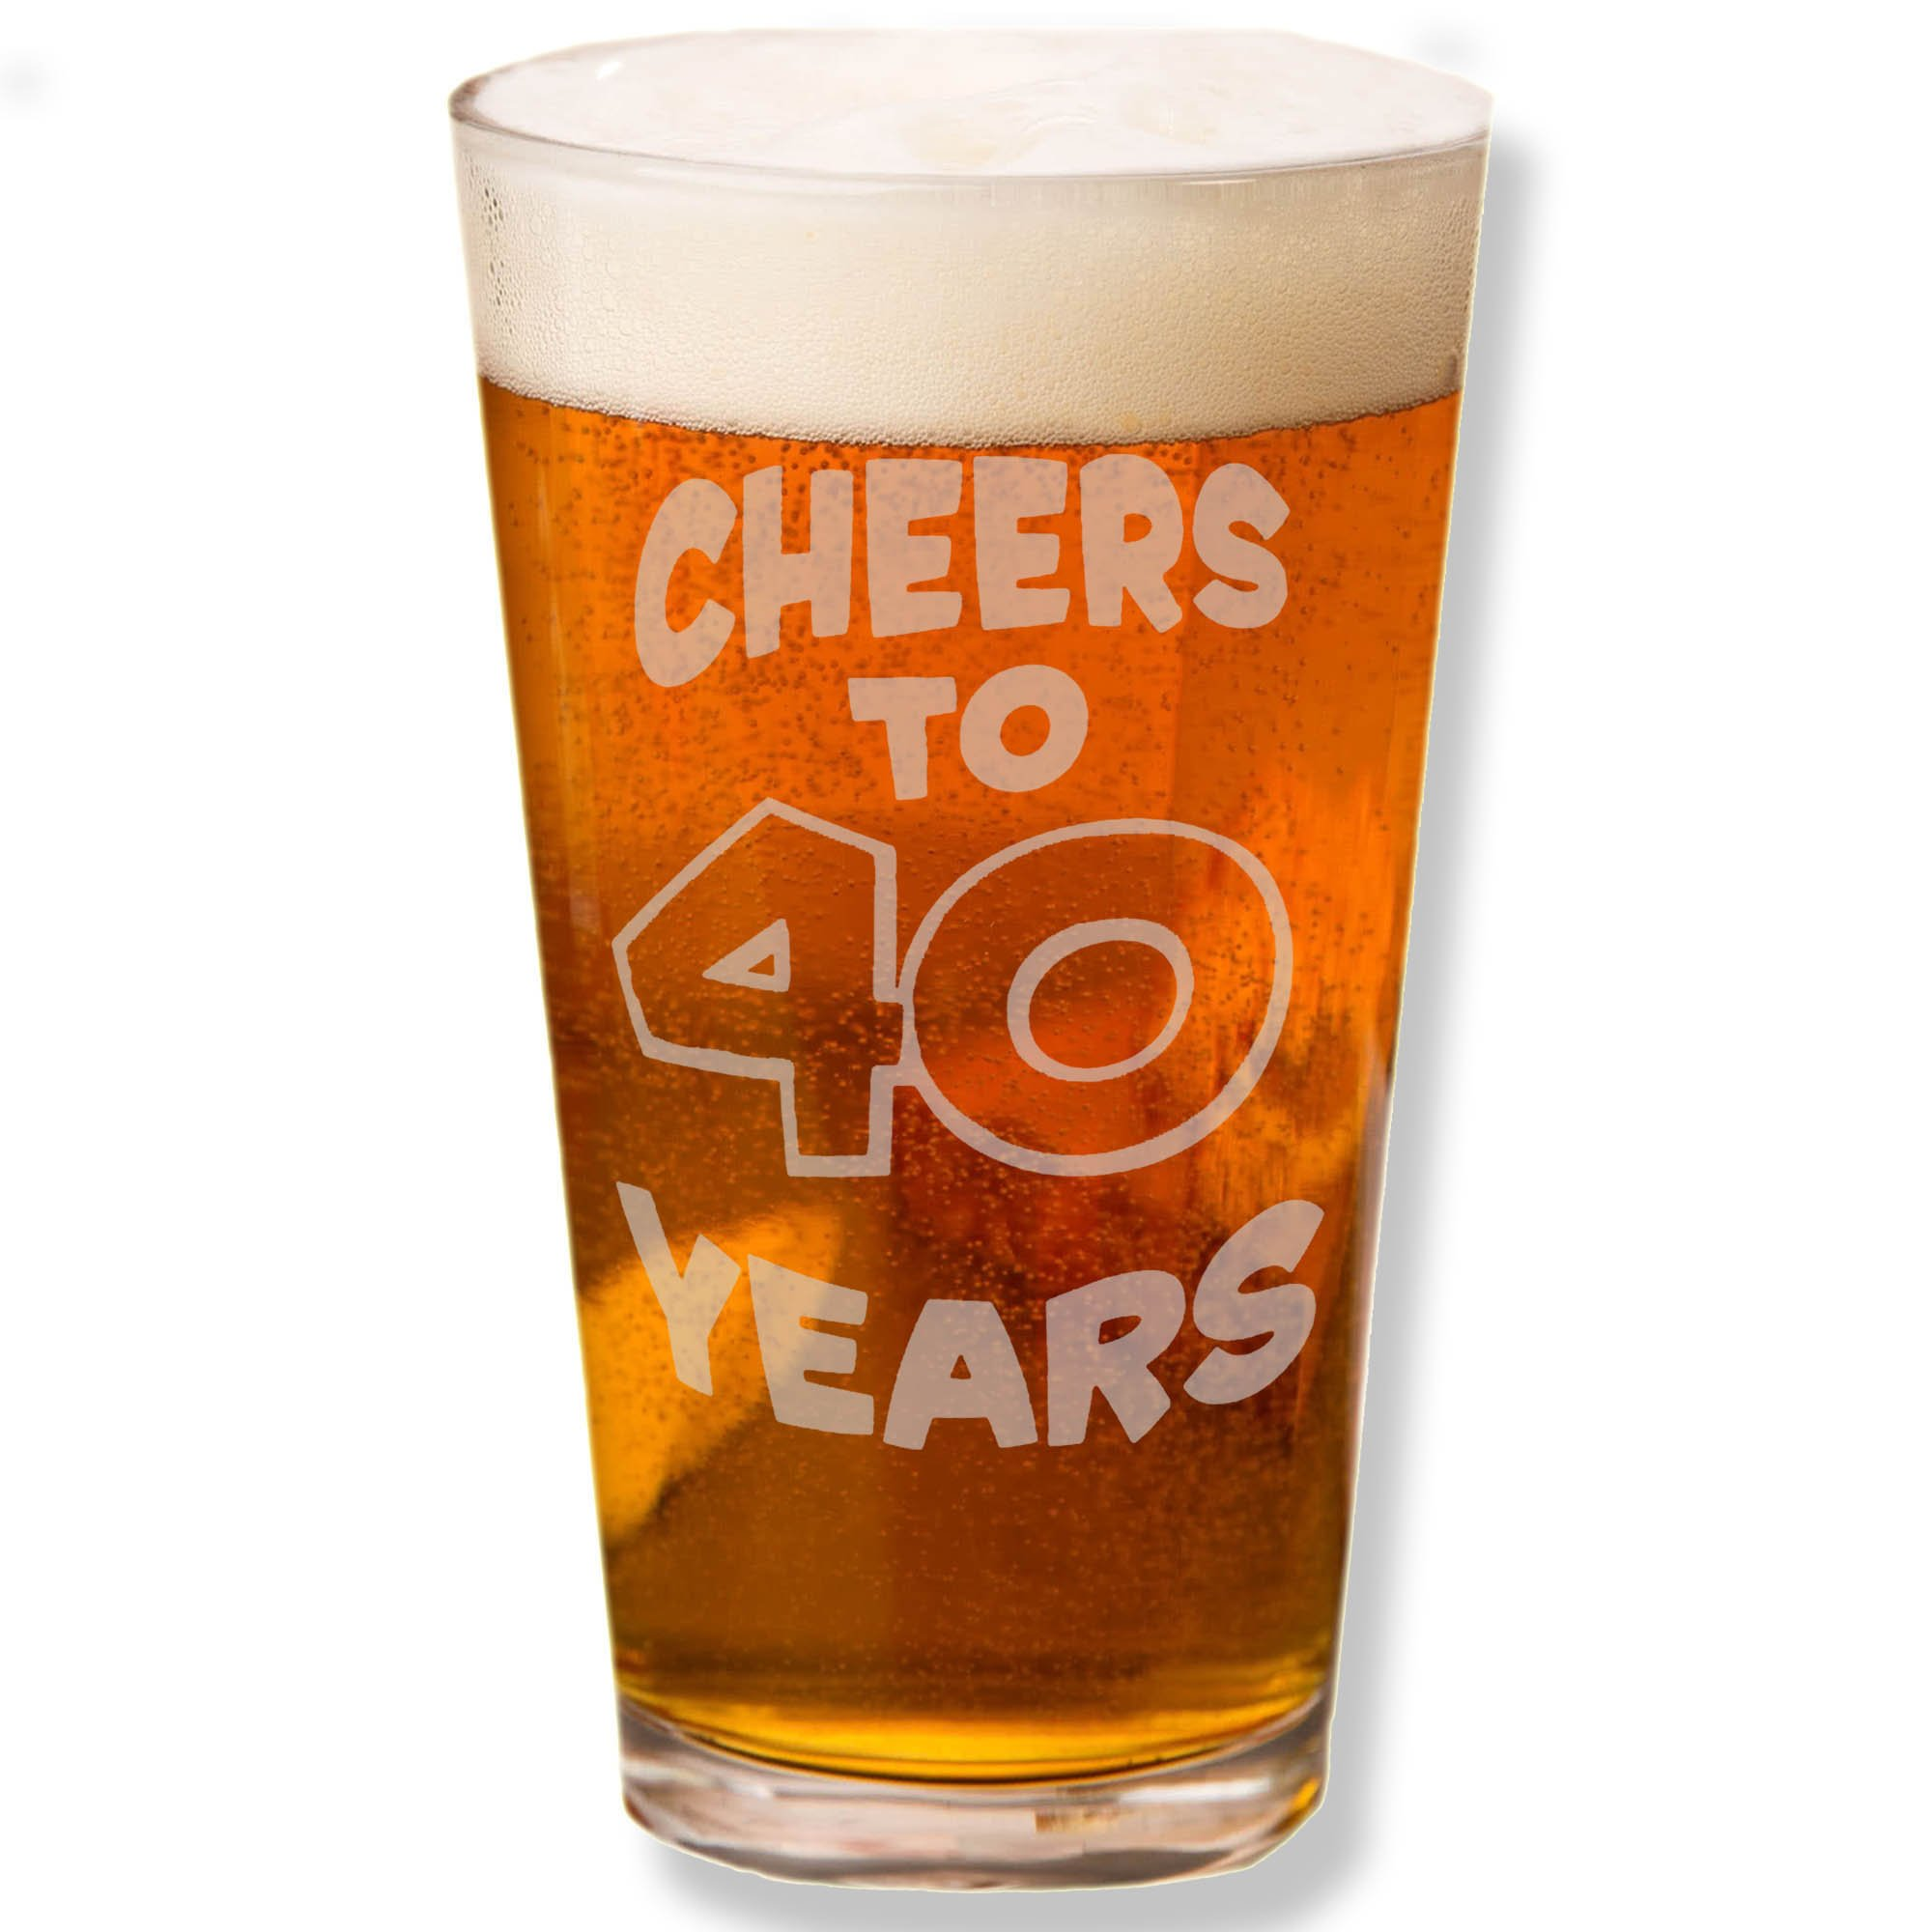 Shop4Ever Cheers To 40 Years Laser Engraved Beer Pint Glass ~ 40th Birthday Gift ~ (Clear, 16 oz.) by Shop4Ever (Image #1)